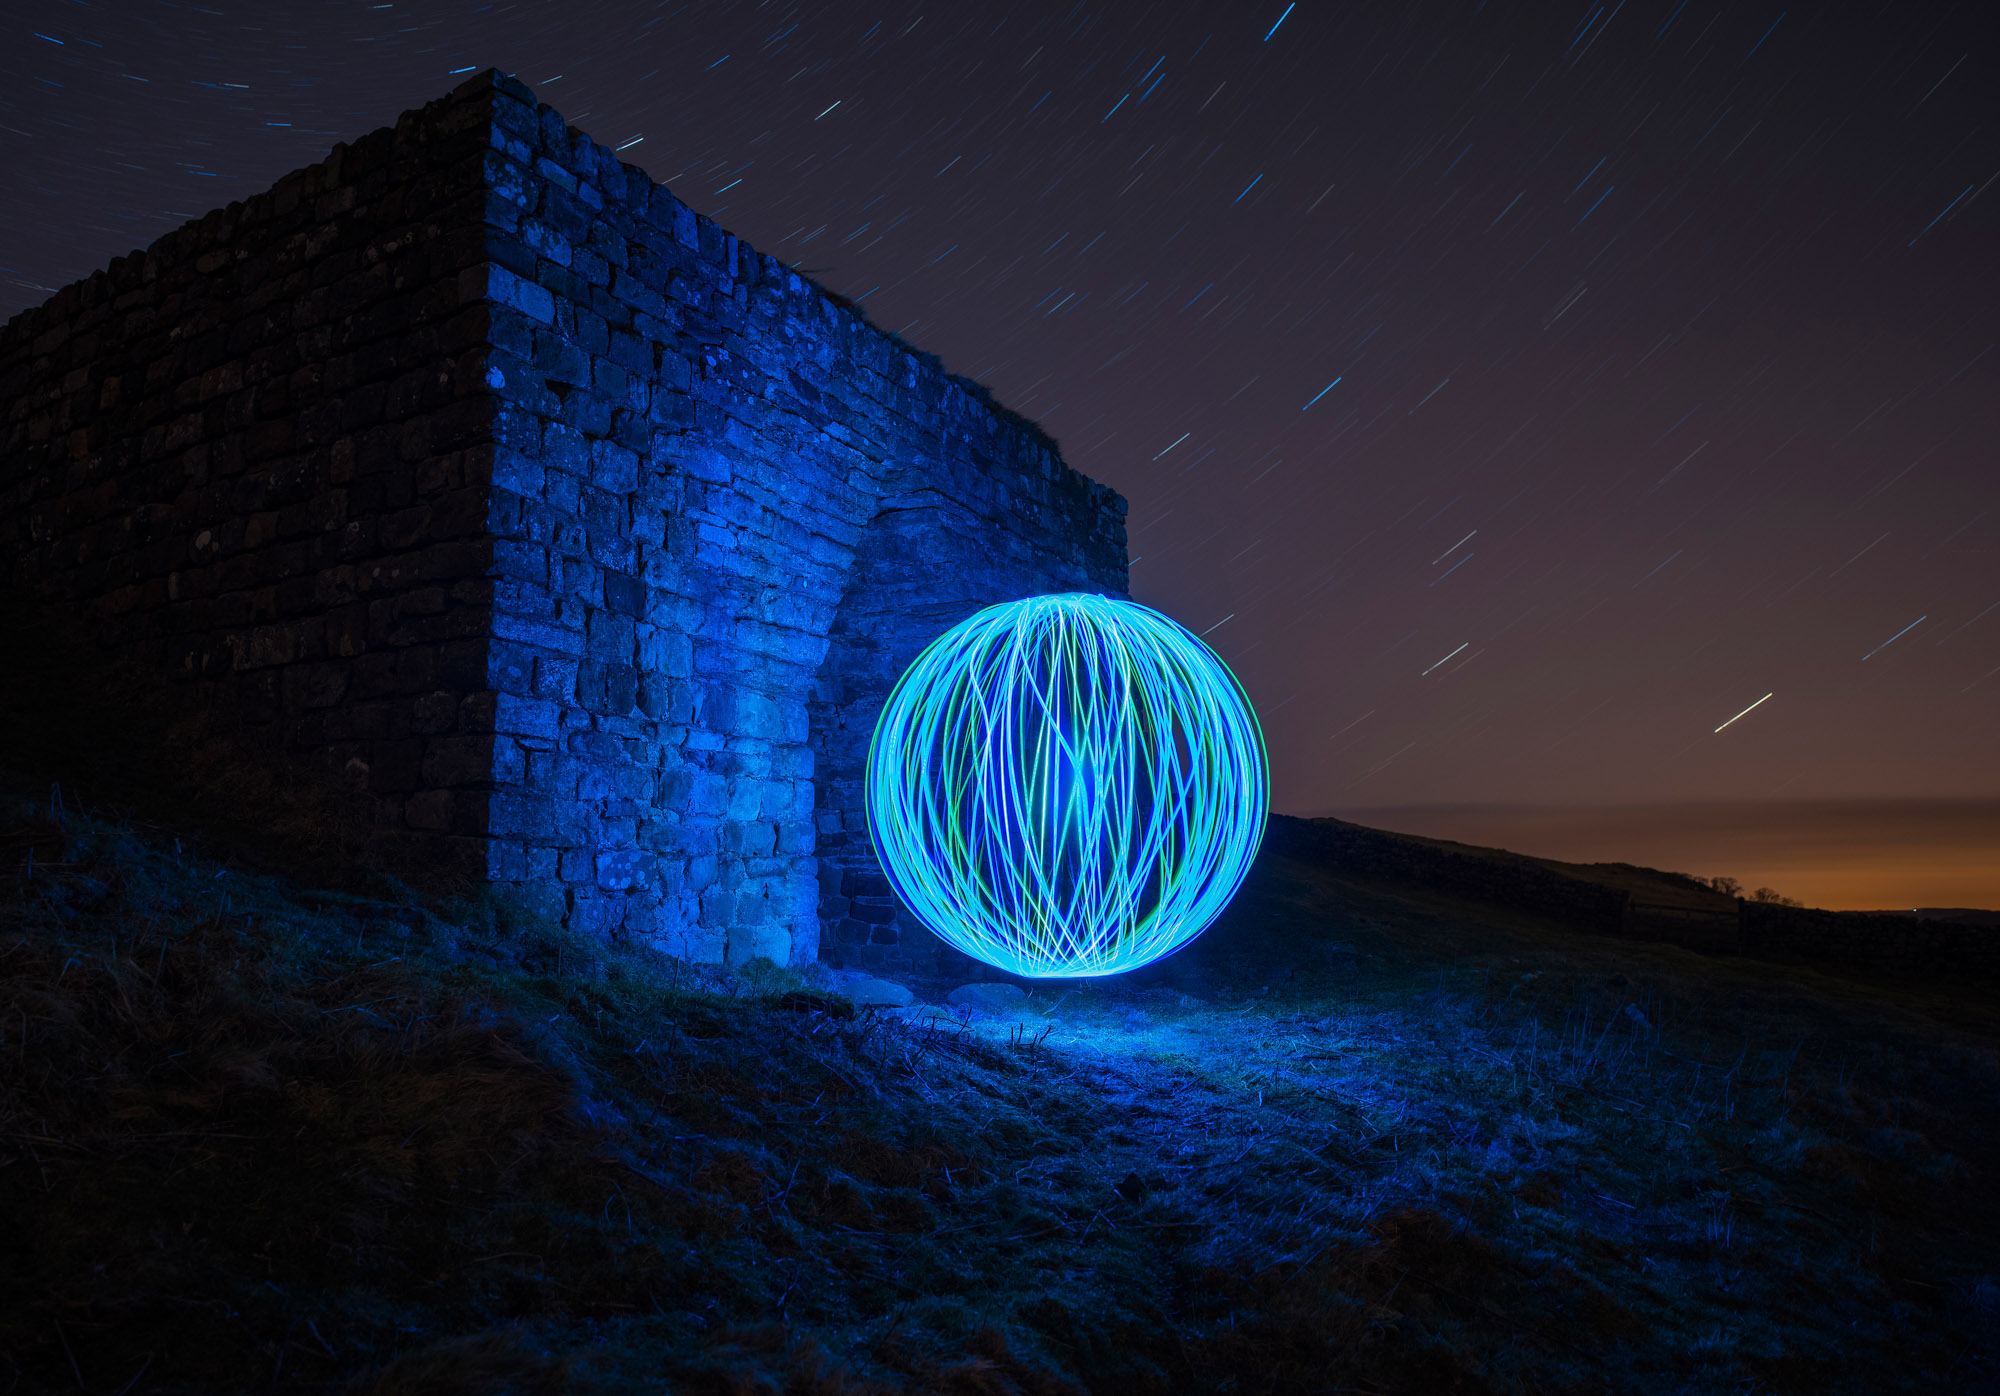 Light orb painting night photography at Hadrian's Wall, Northumberland, England